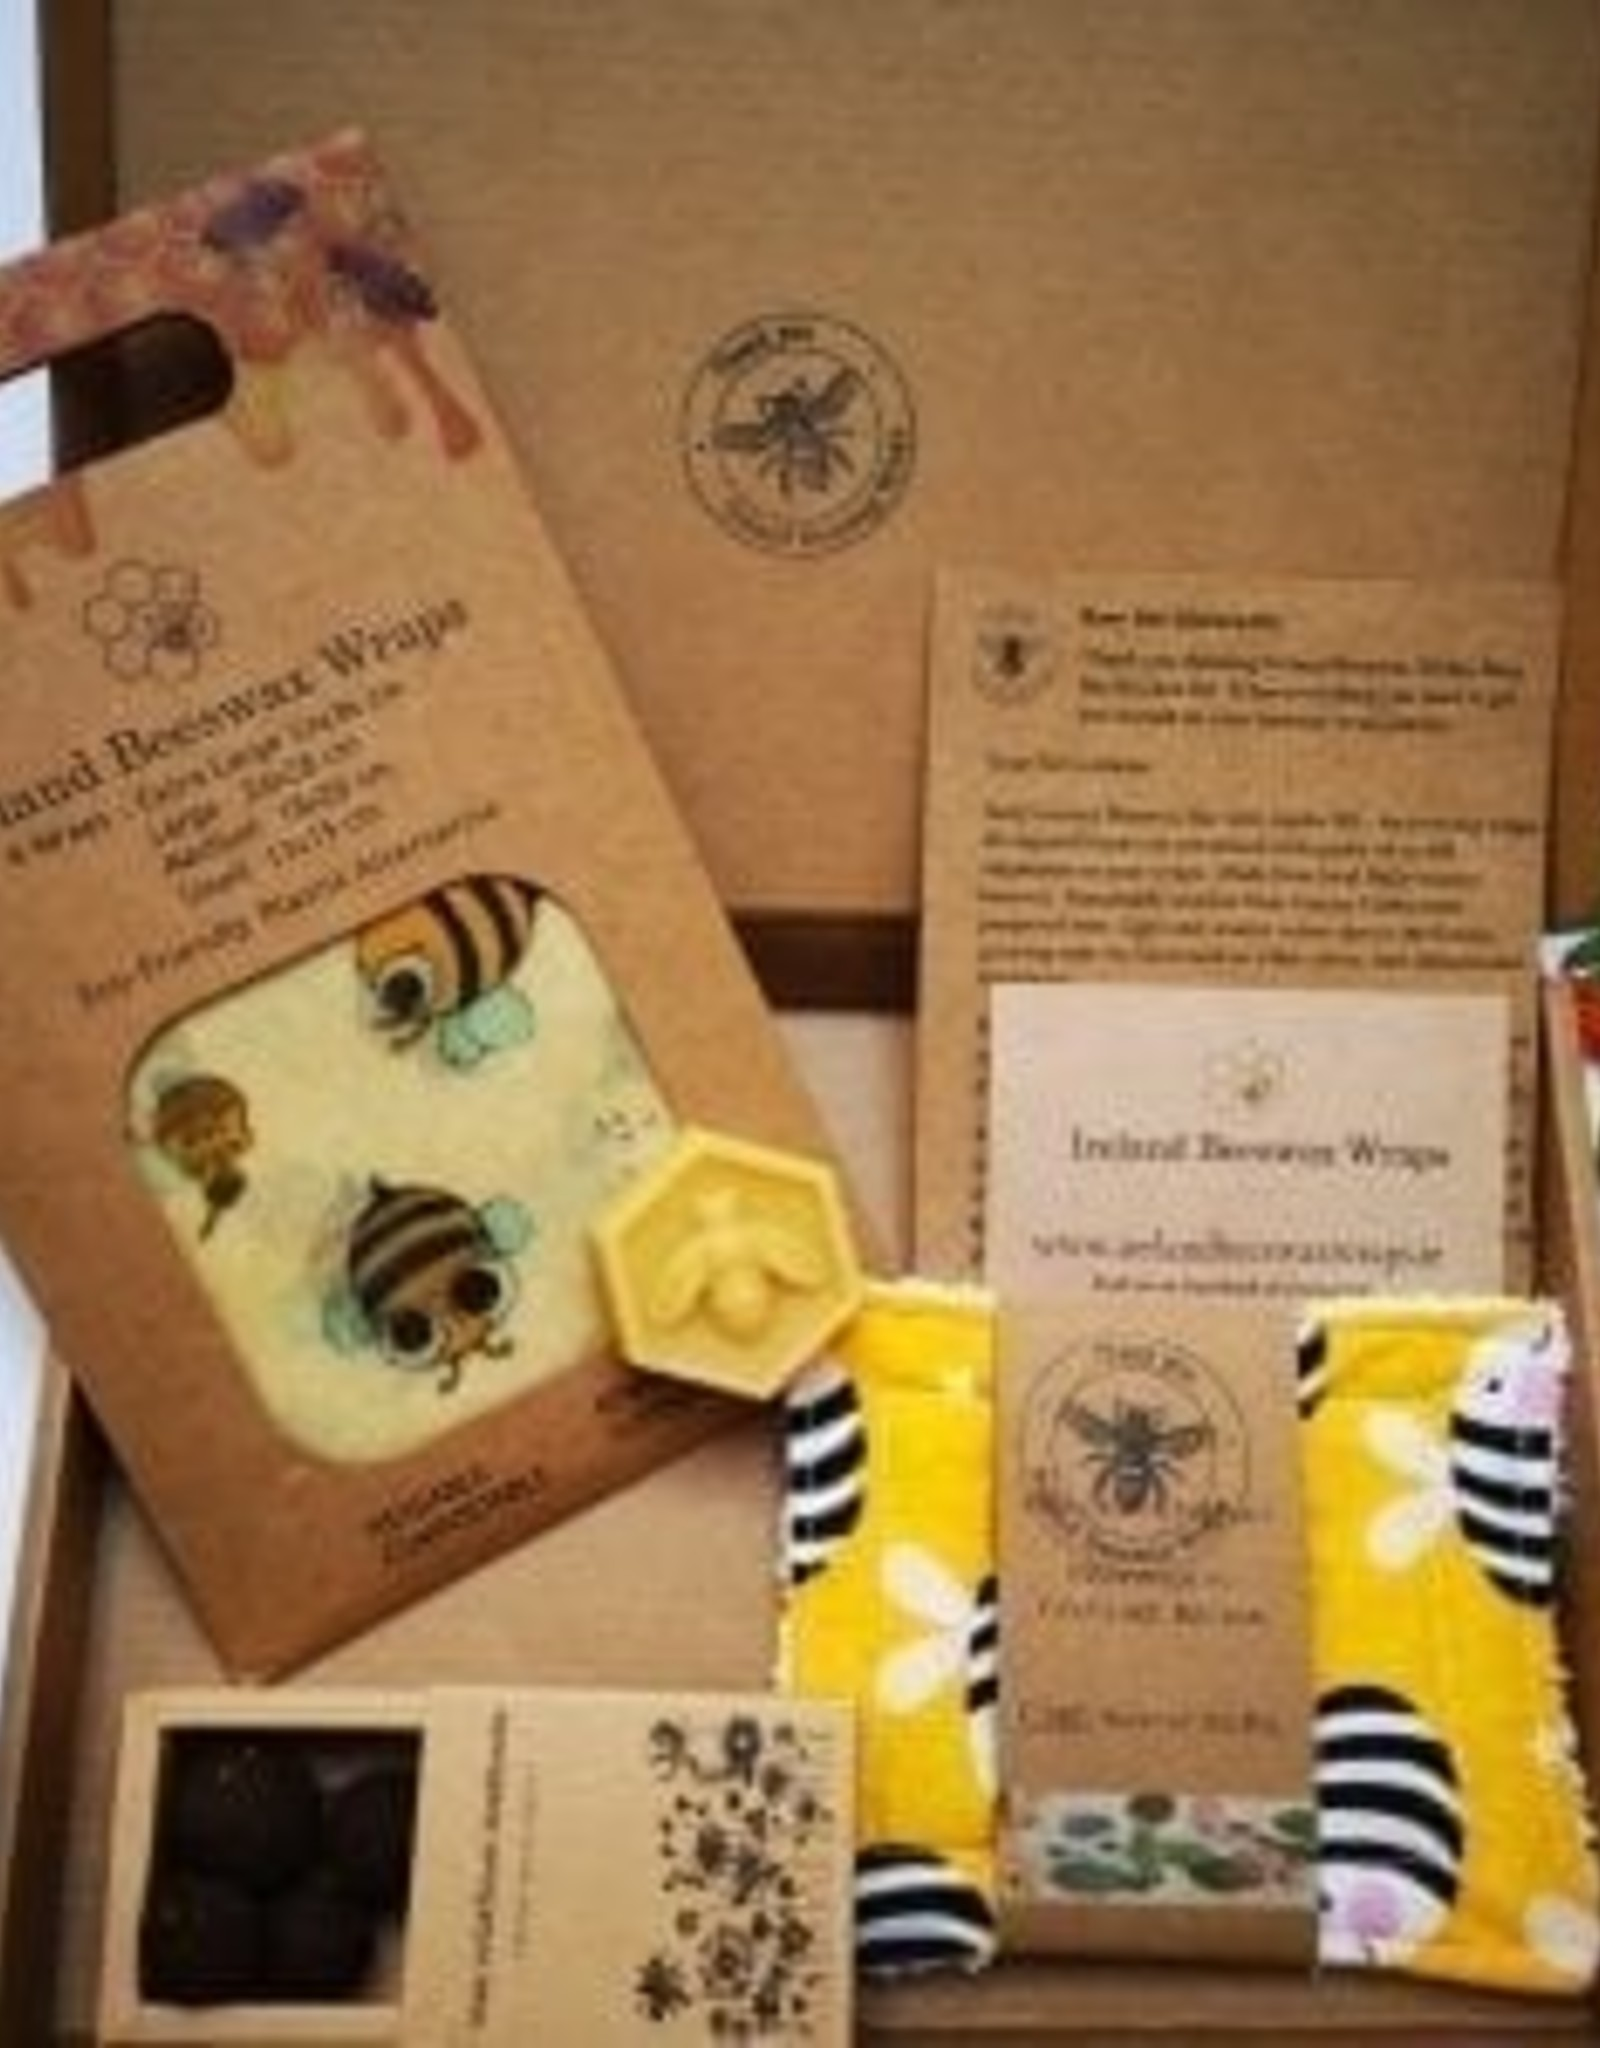 Ireland Beeswax Wraps Busy Bee Kitchen Kit